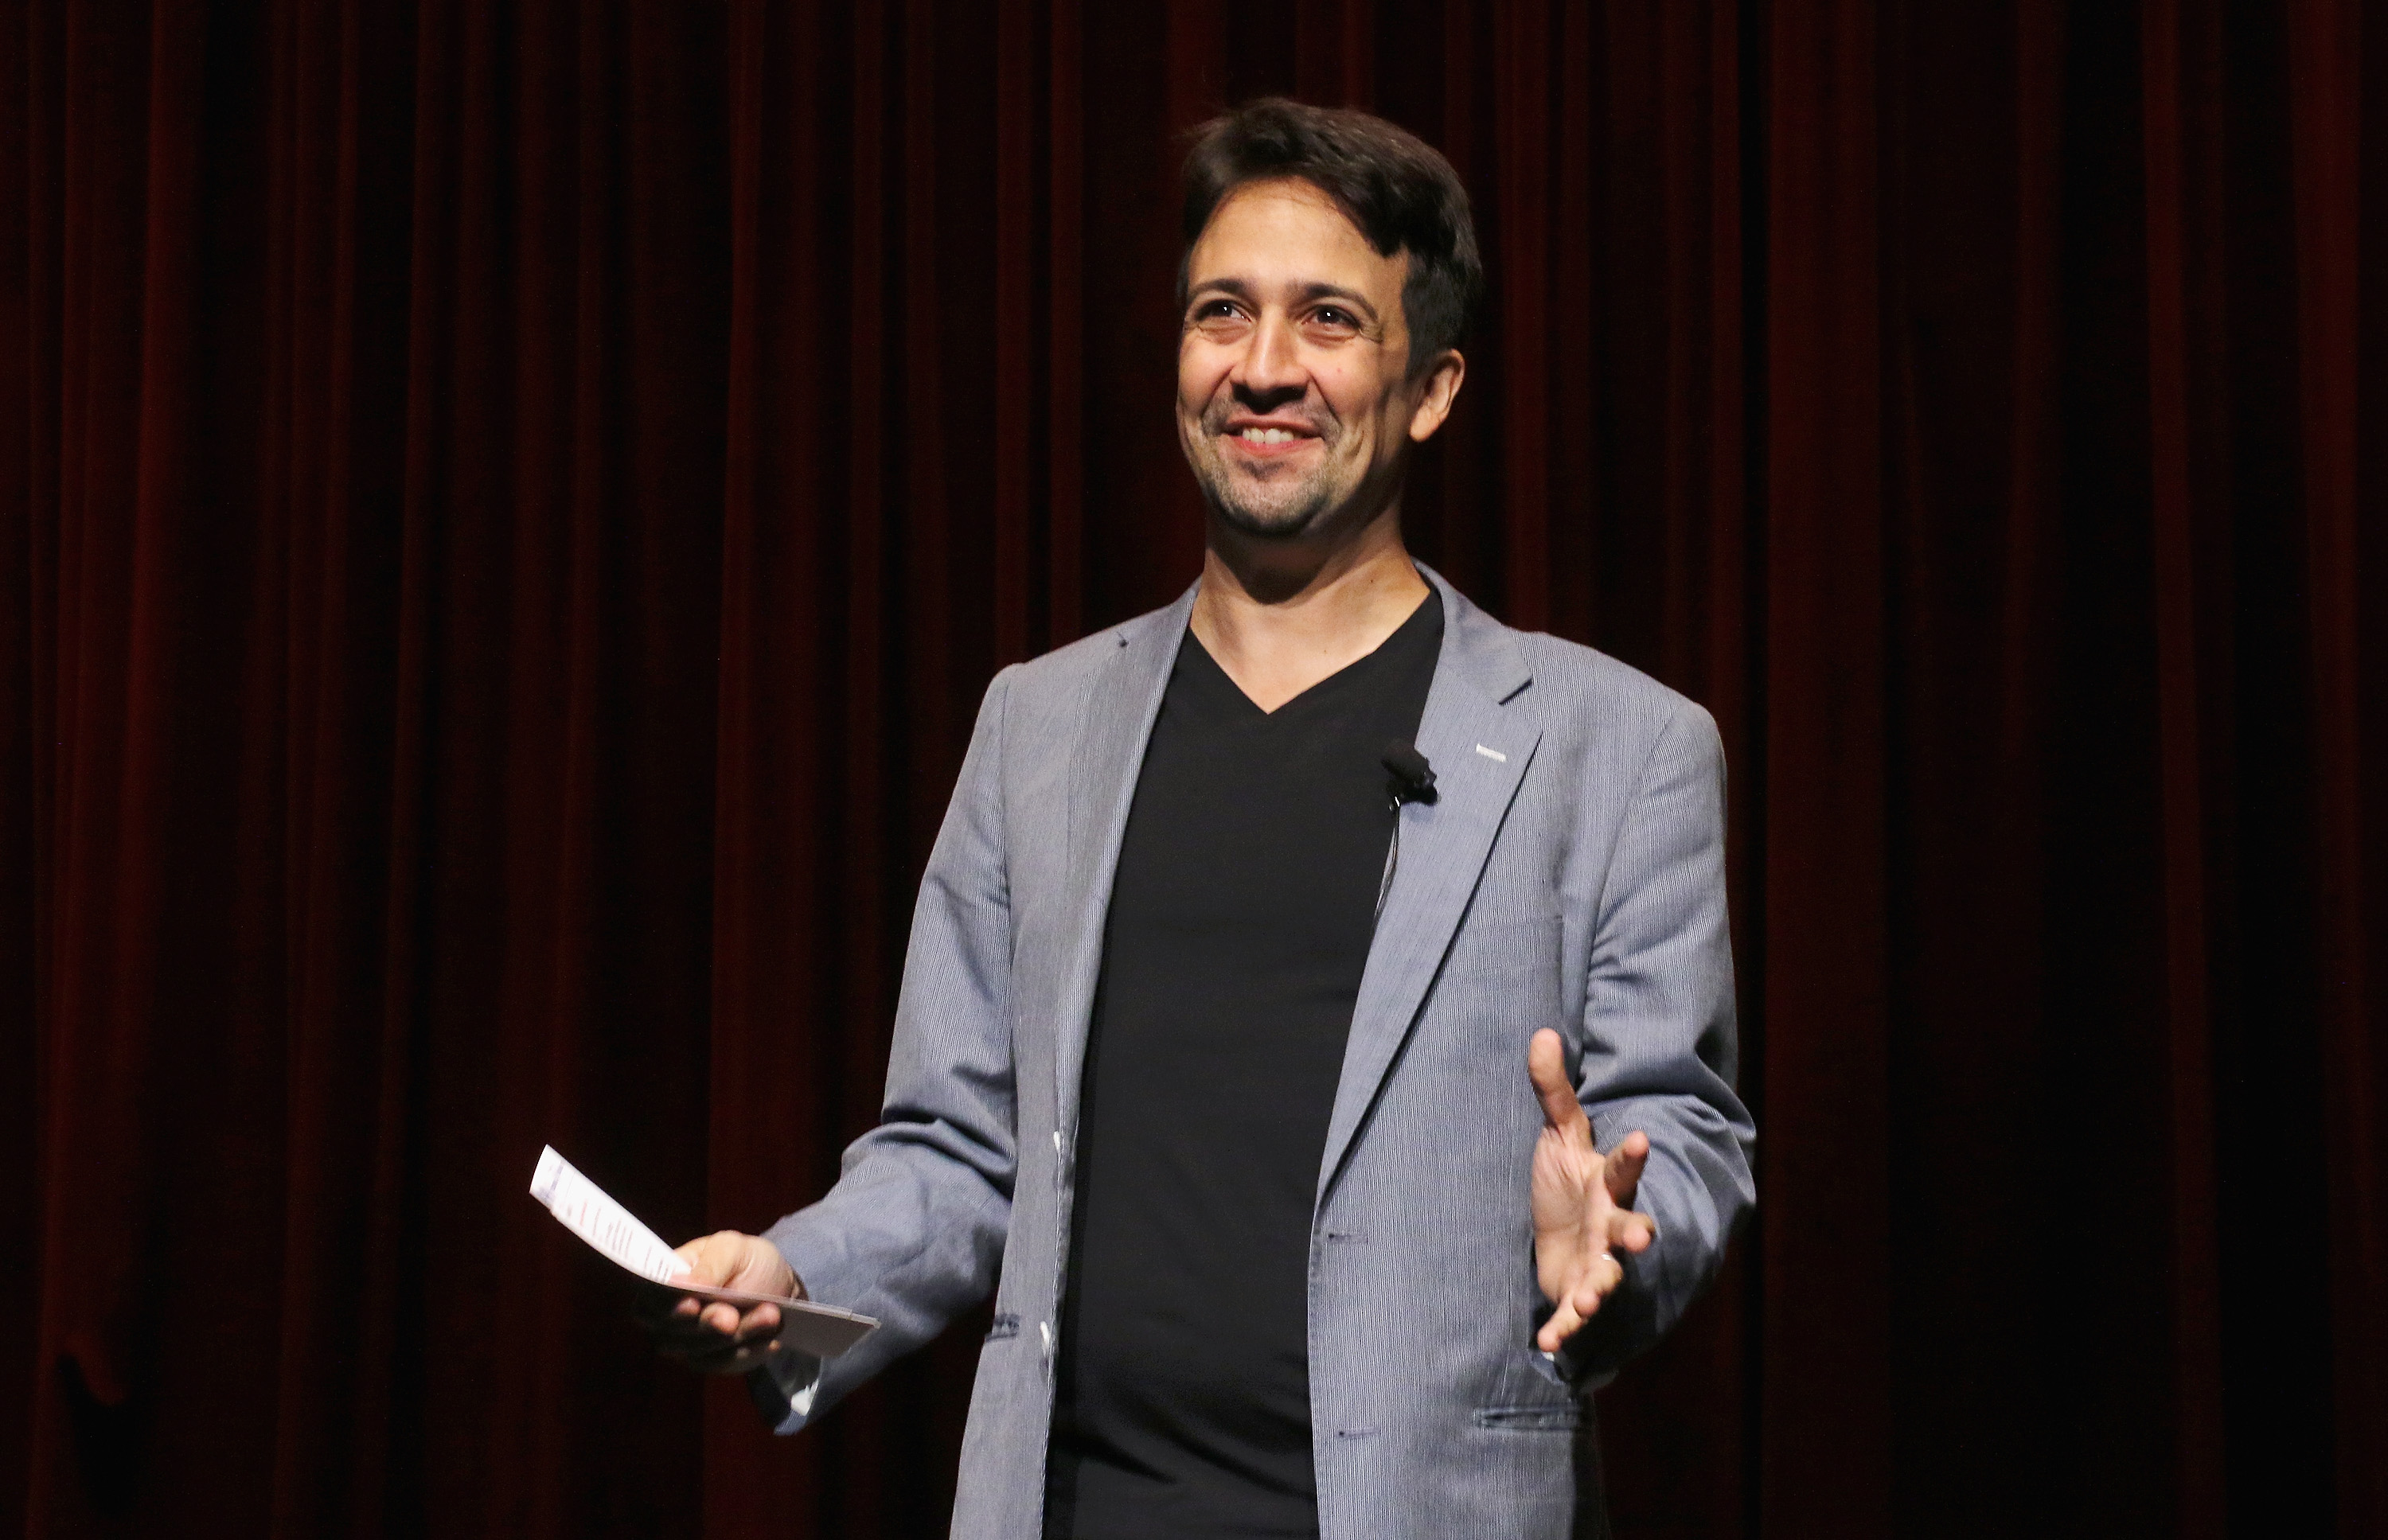 Actor Lin-Manuel Miranda attends the Grease: Live  panel & reception at The Edison Ballroom on August 15, 2016 in New York City.